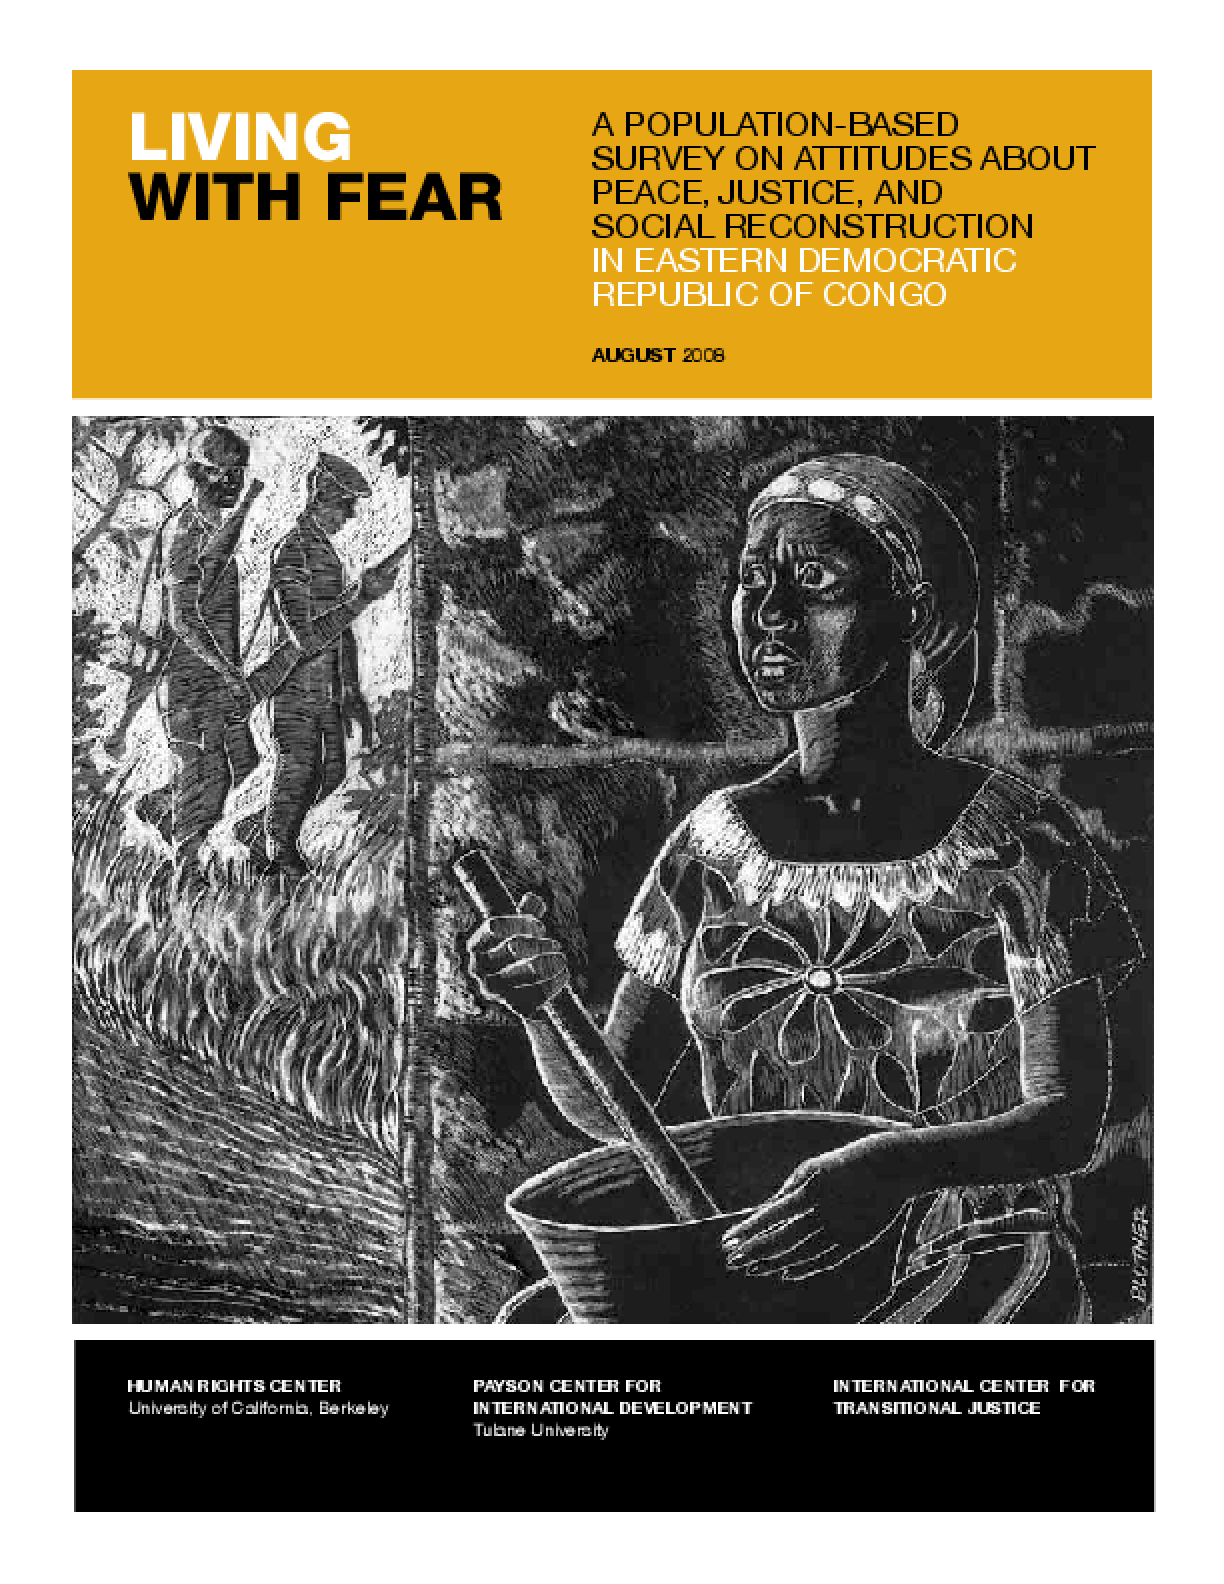 Living With Fear: A Population-Based Survey on Attitudes About Peace, Justice and Social Reconstruction in Eastern Congo